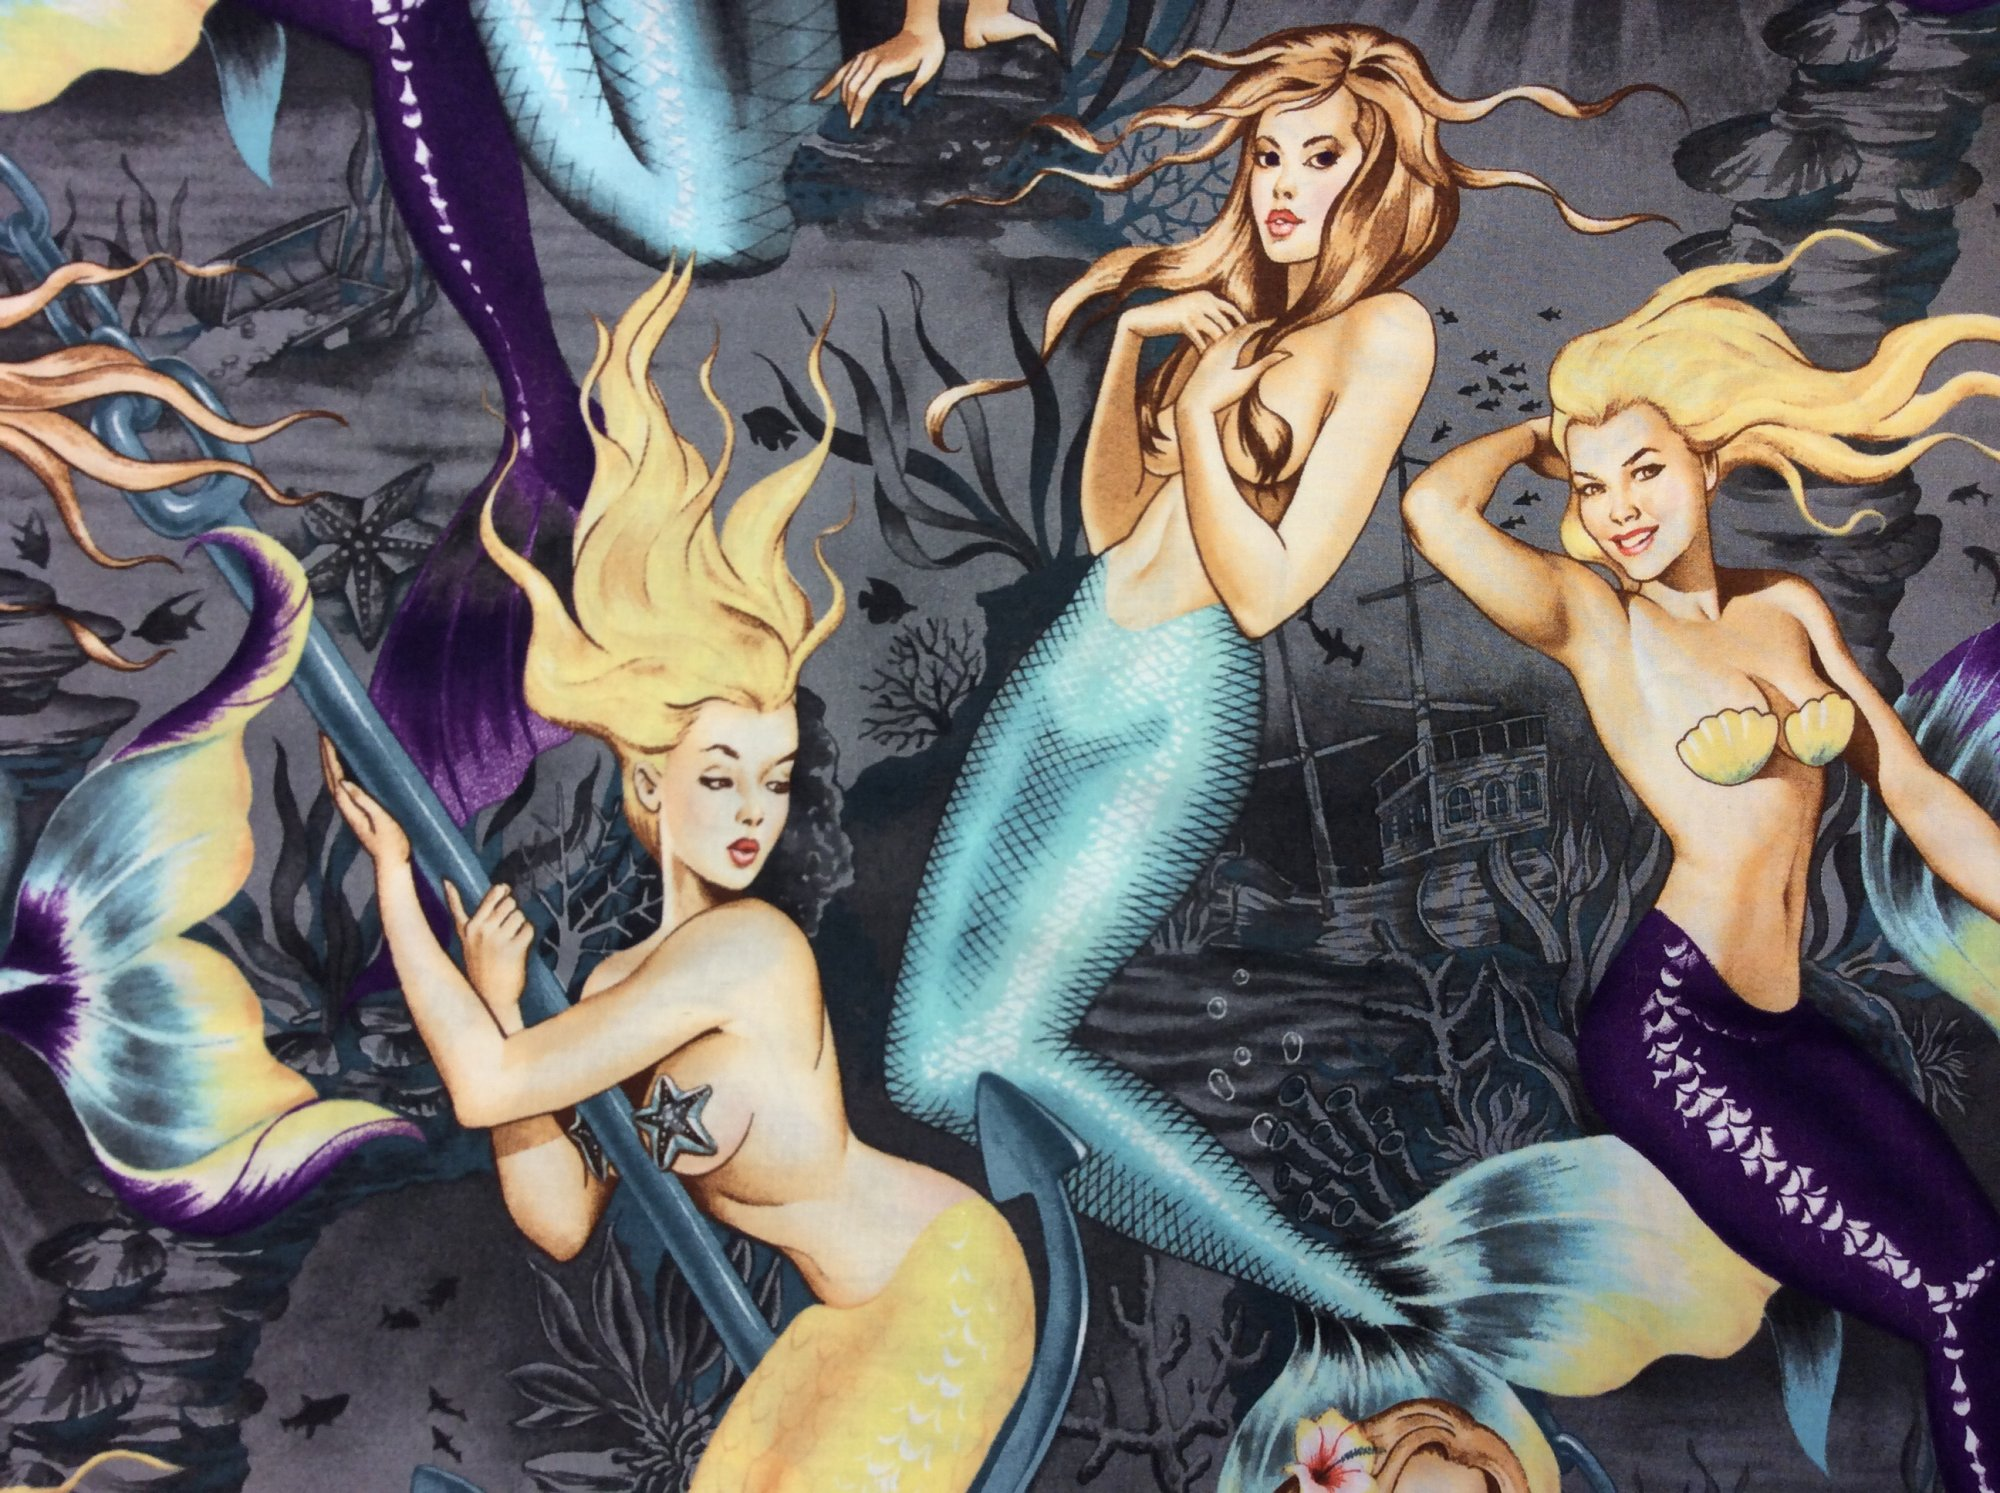 Sexy Pin Up Girls Sea Sirens Mermaid Hot Print Alexander Henry Cotton Fabric Quilt Fabric CR539